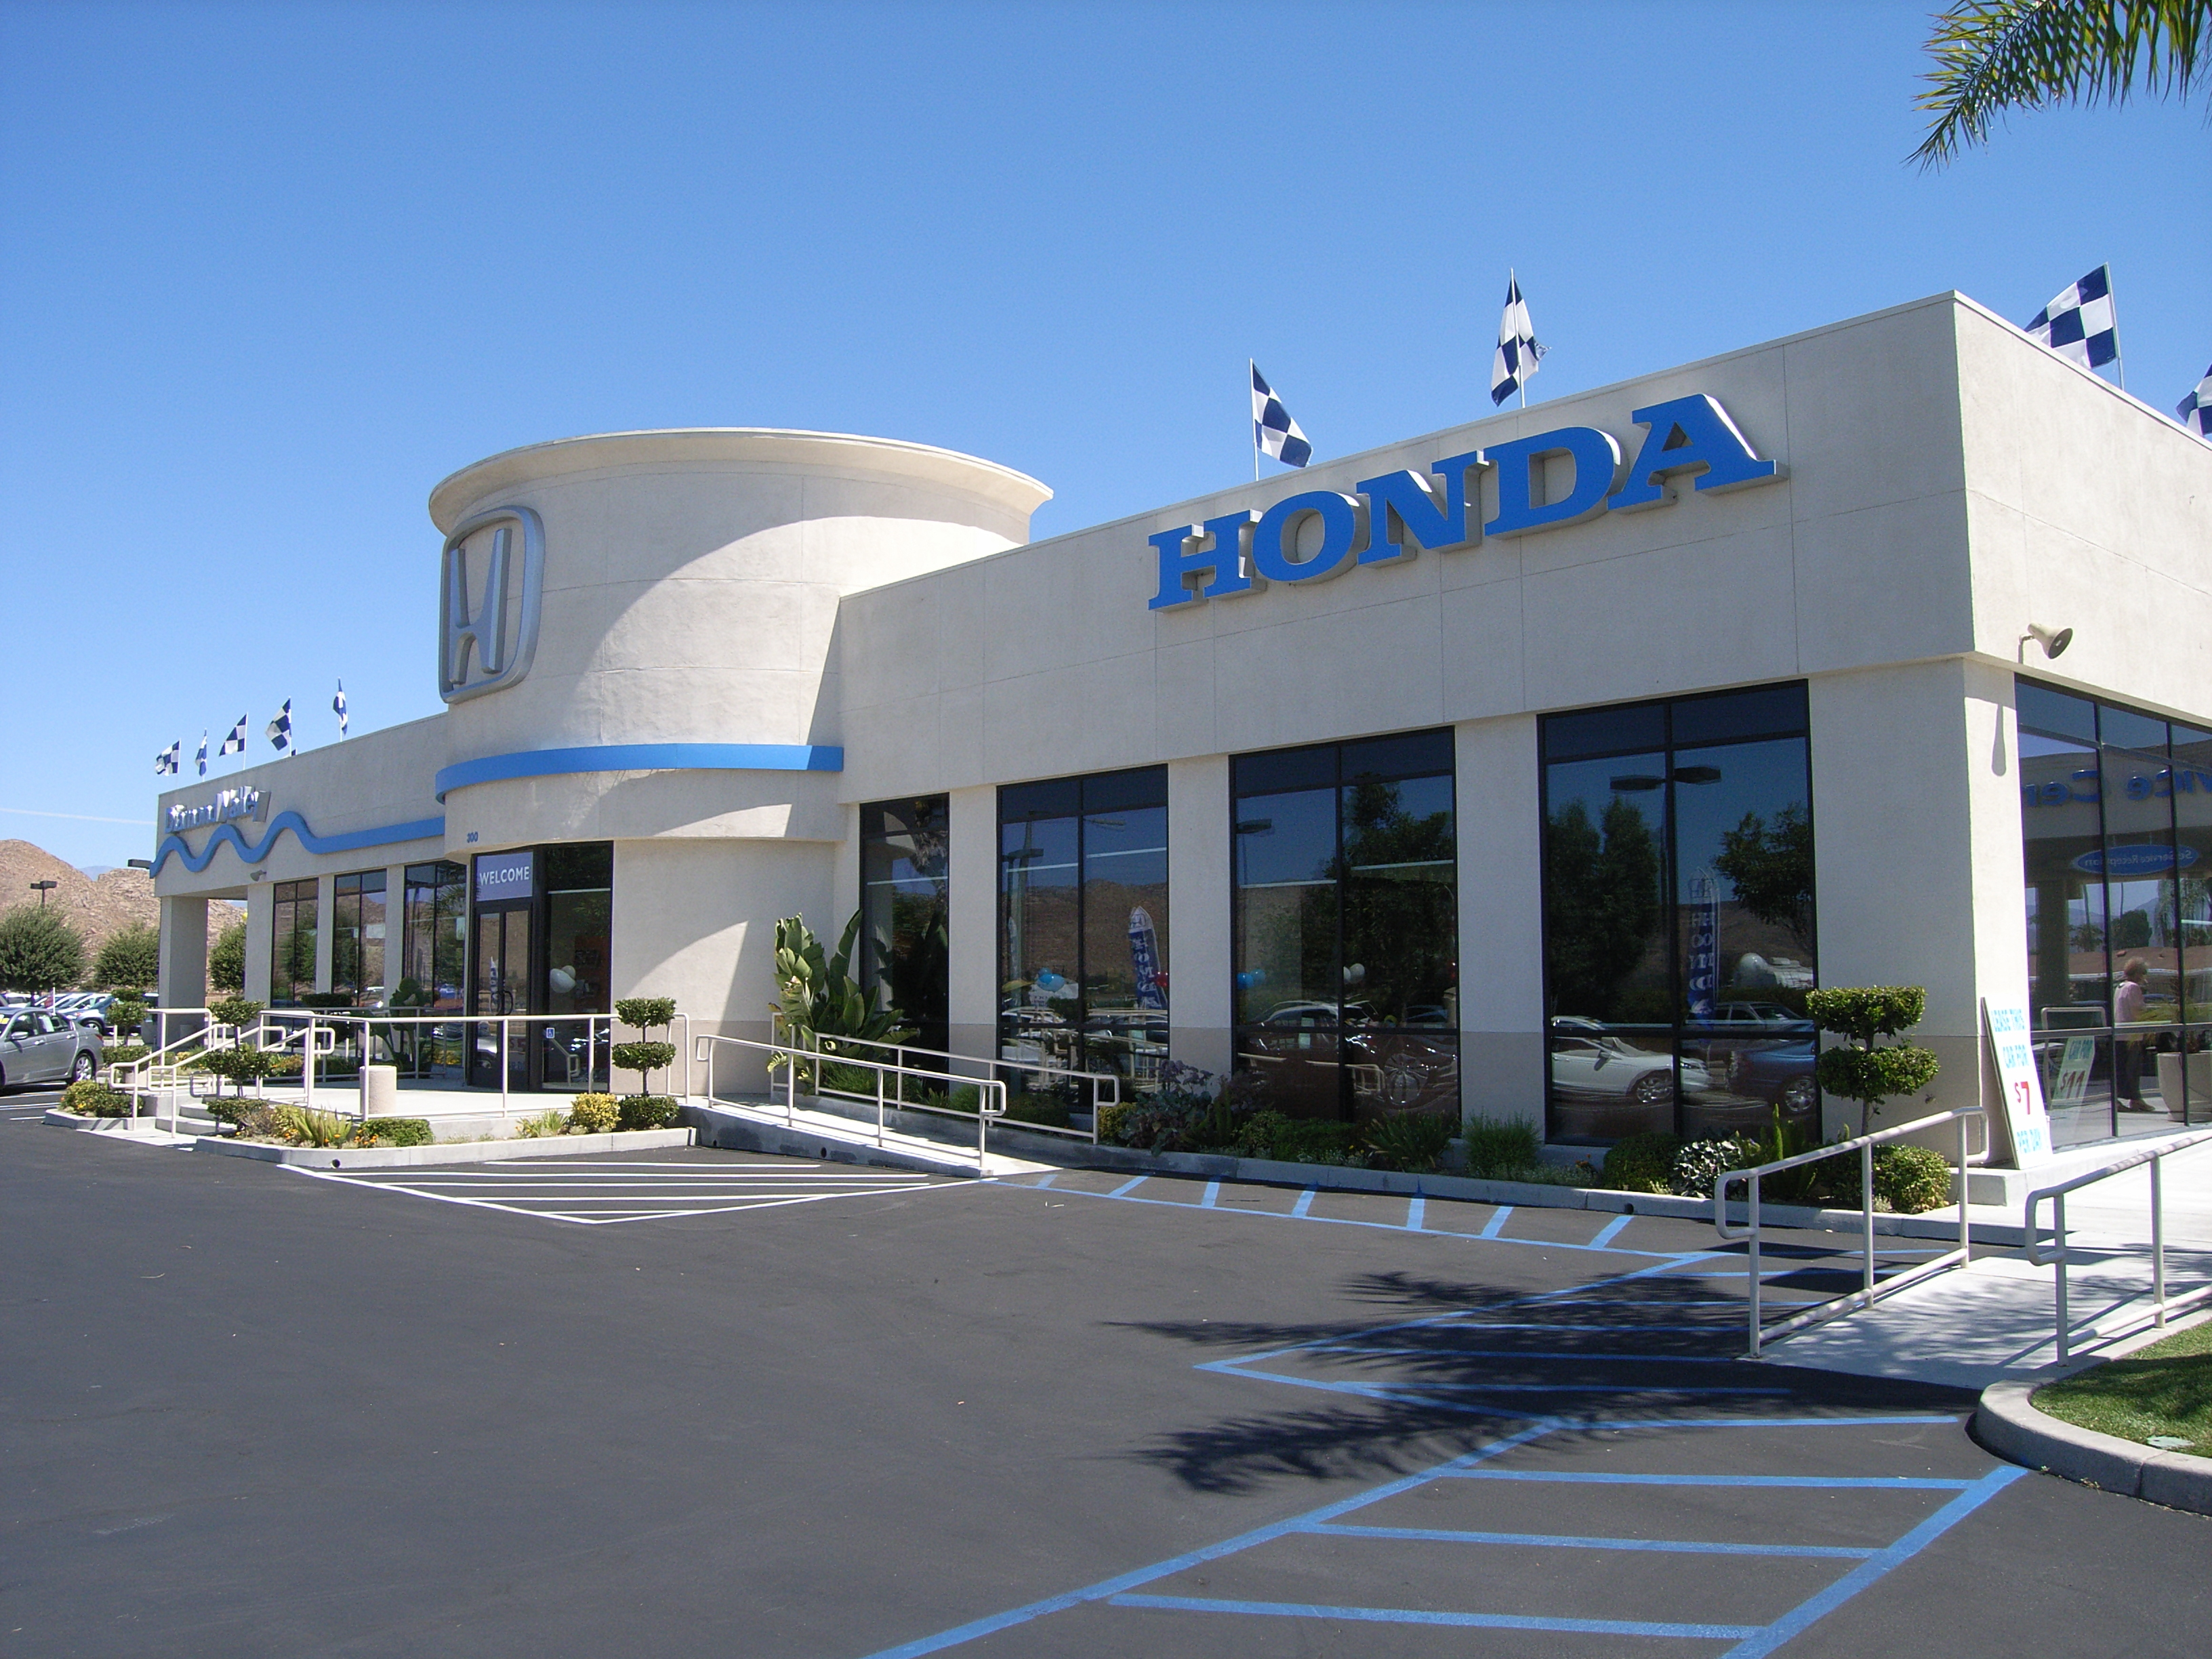 Diamond valley honda in hemet ca auto dealers yellow for Honda dealerships in ri